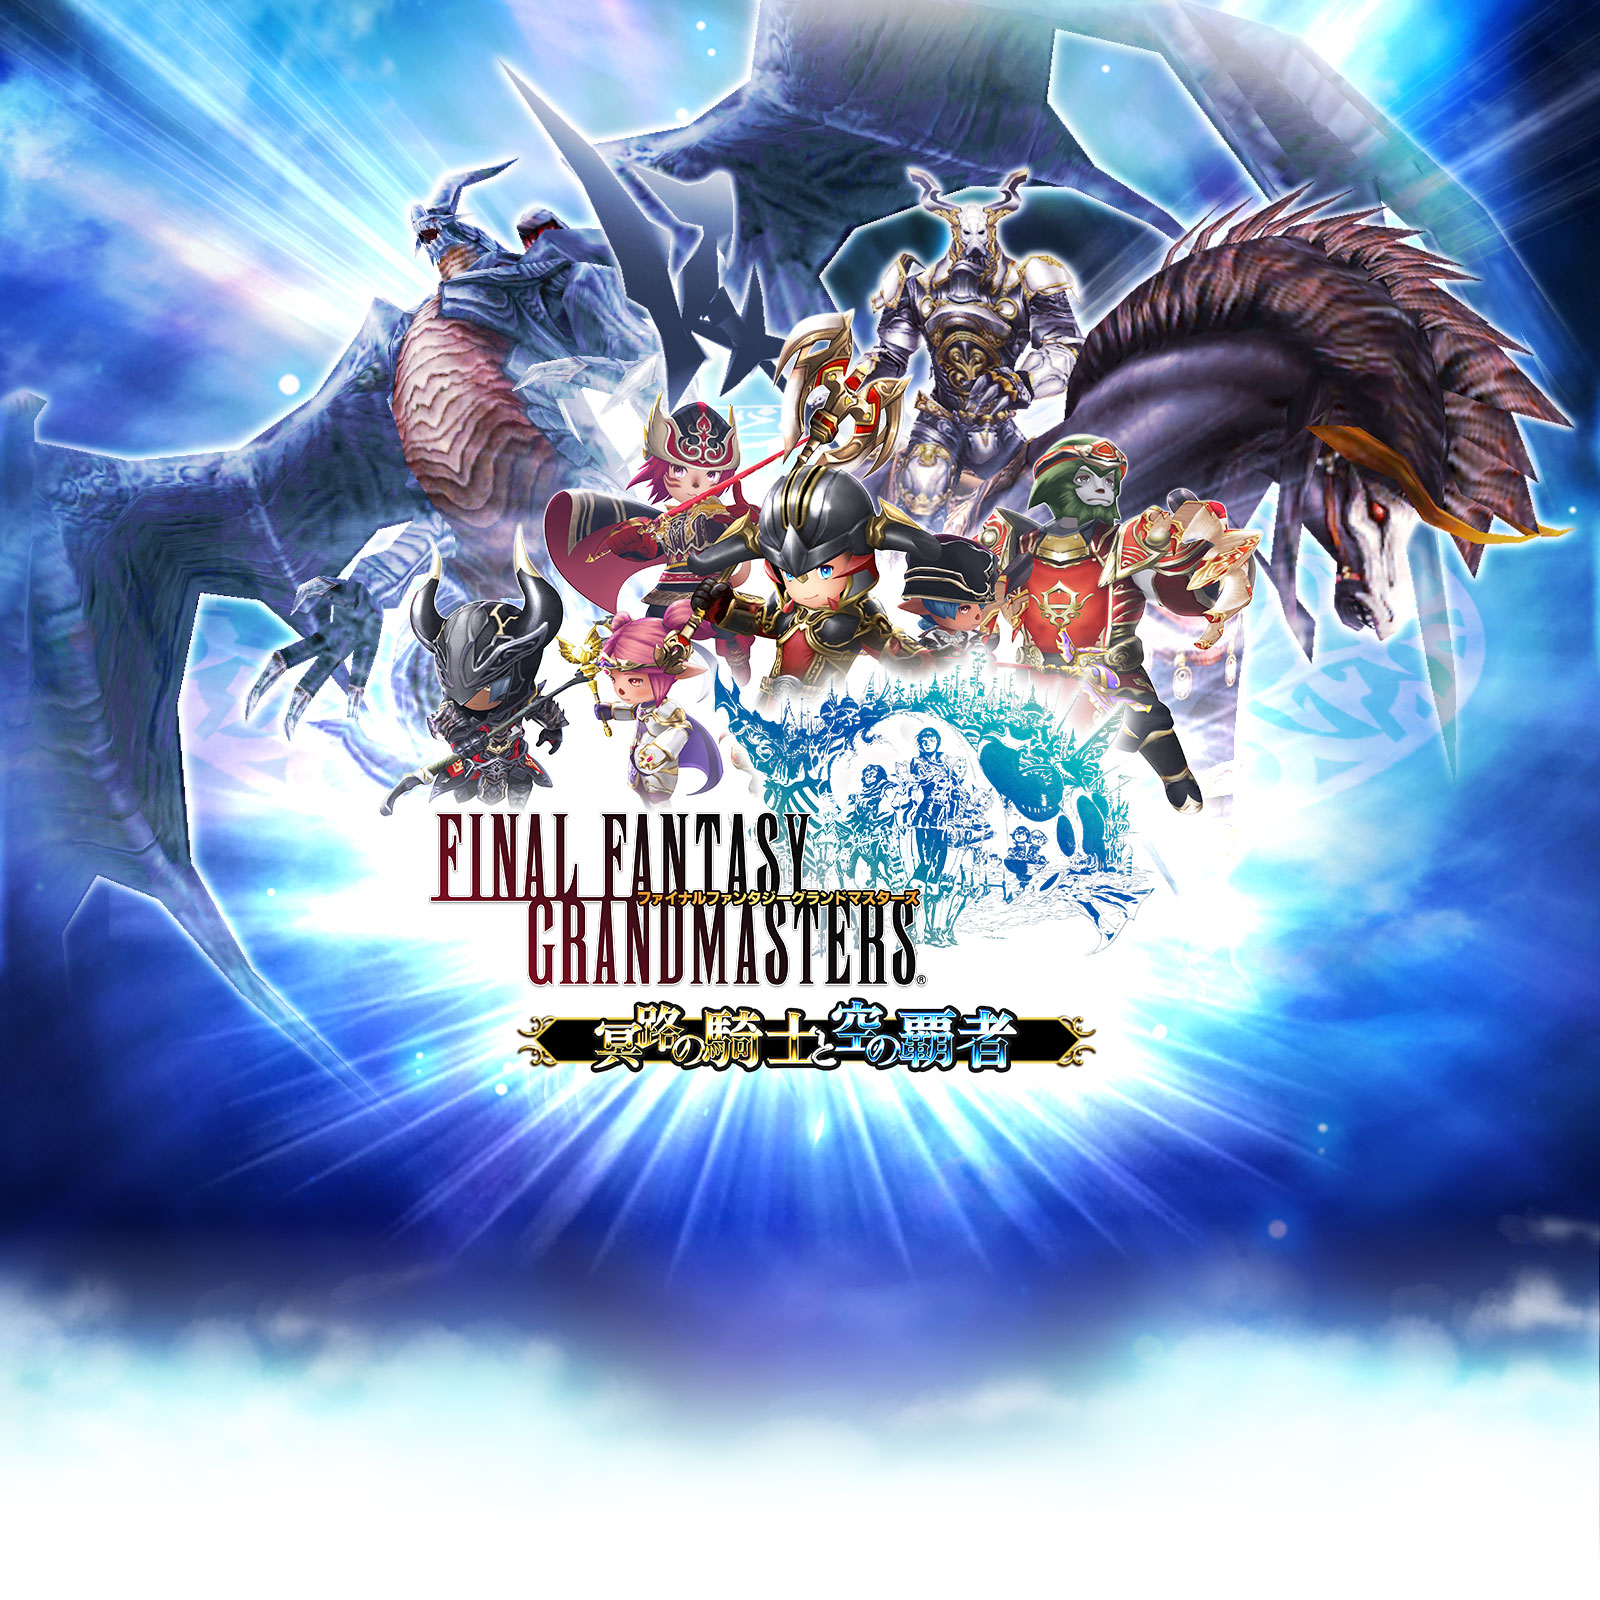 Final Fantasy Grand Masters